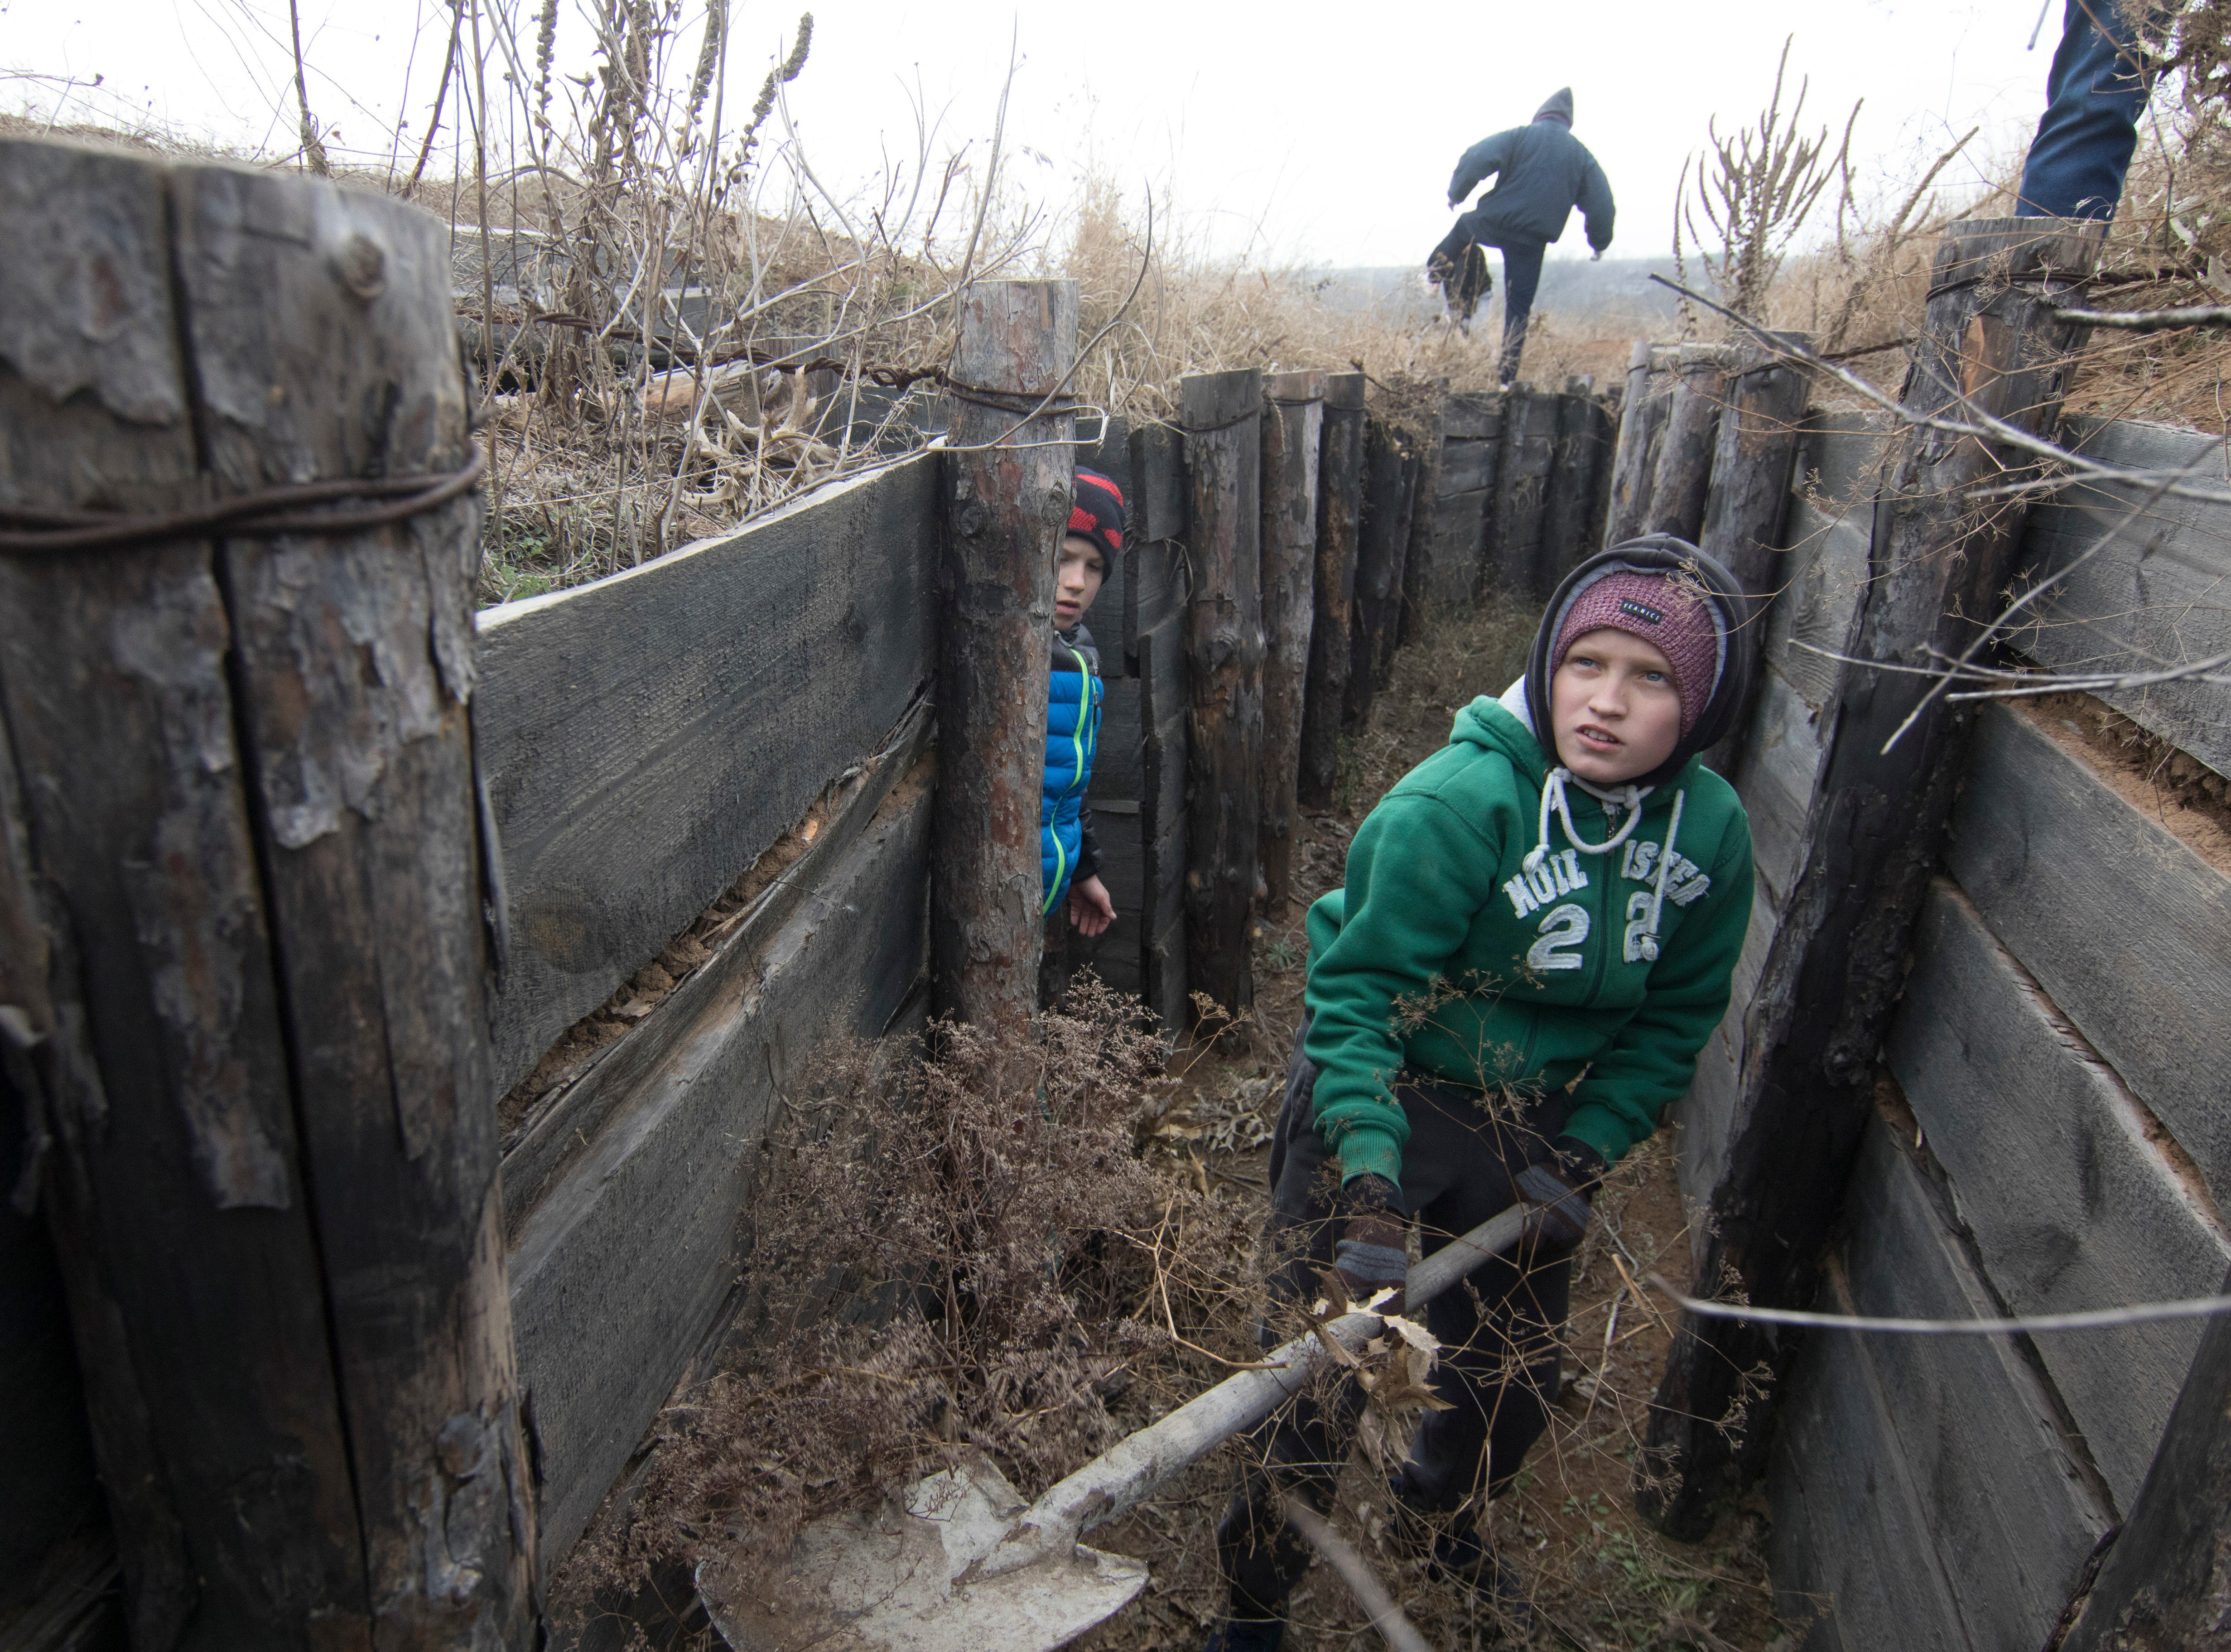 Children from an orphanage volunteer to help strengthen trenches on Ukraine's Army positions near Rybatske, Ukraine, Monday, Nov. 26, 2018.